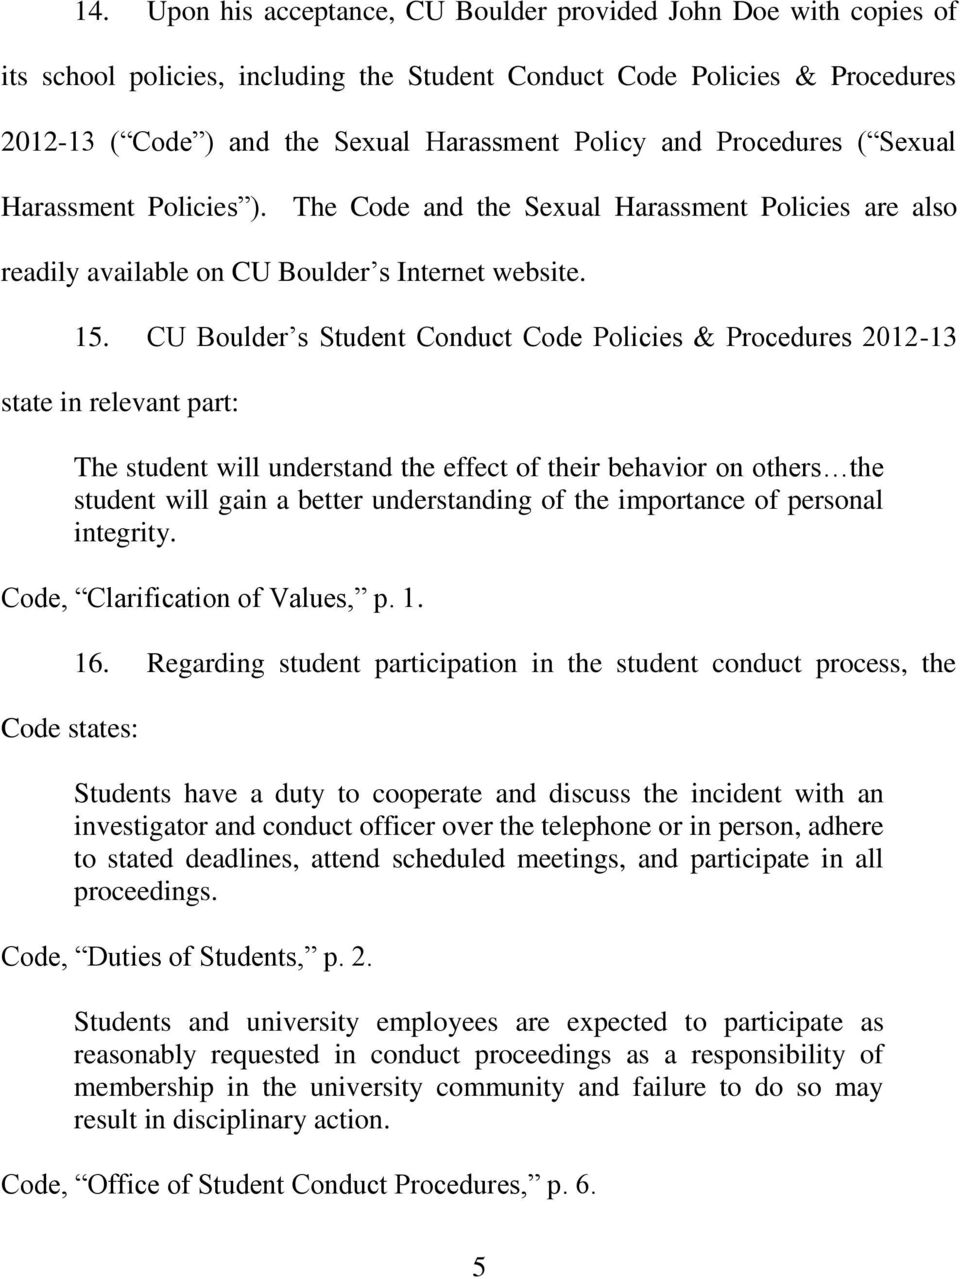 CU Boulder s Student Conduct Code Policies & Procedures 2012-13 state in relevant part: The student will understand the effect of their behavior on others the student will gain a better understanding